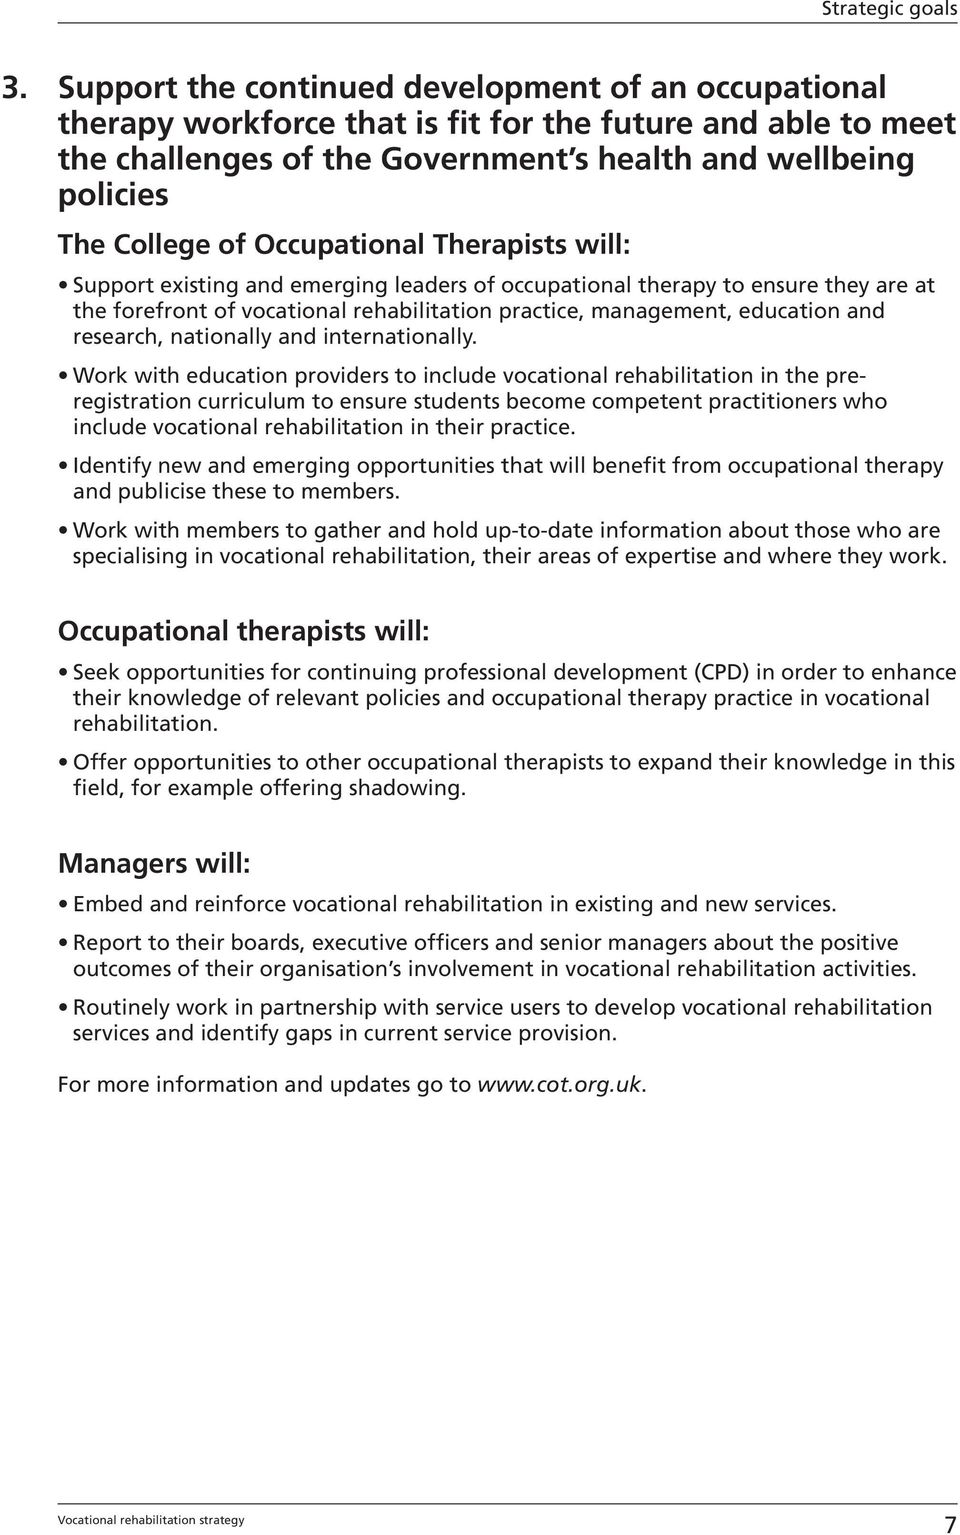 Occupational Therapists will: Support existing and emerging leaders of occupational therapy to ensure they are at the forefront of vocational rehabilitation practice, management, education and